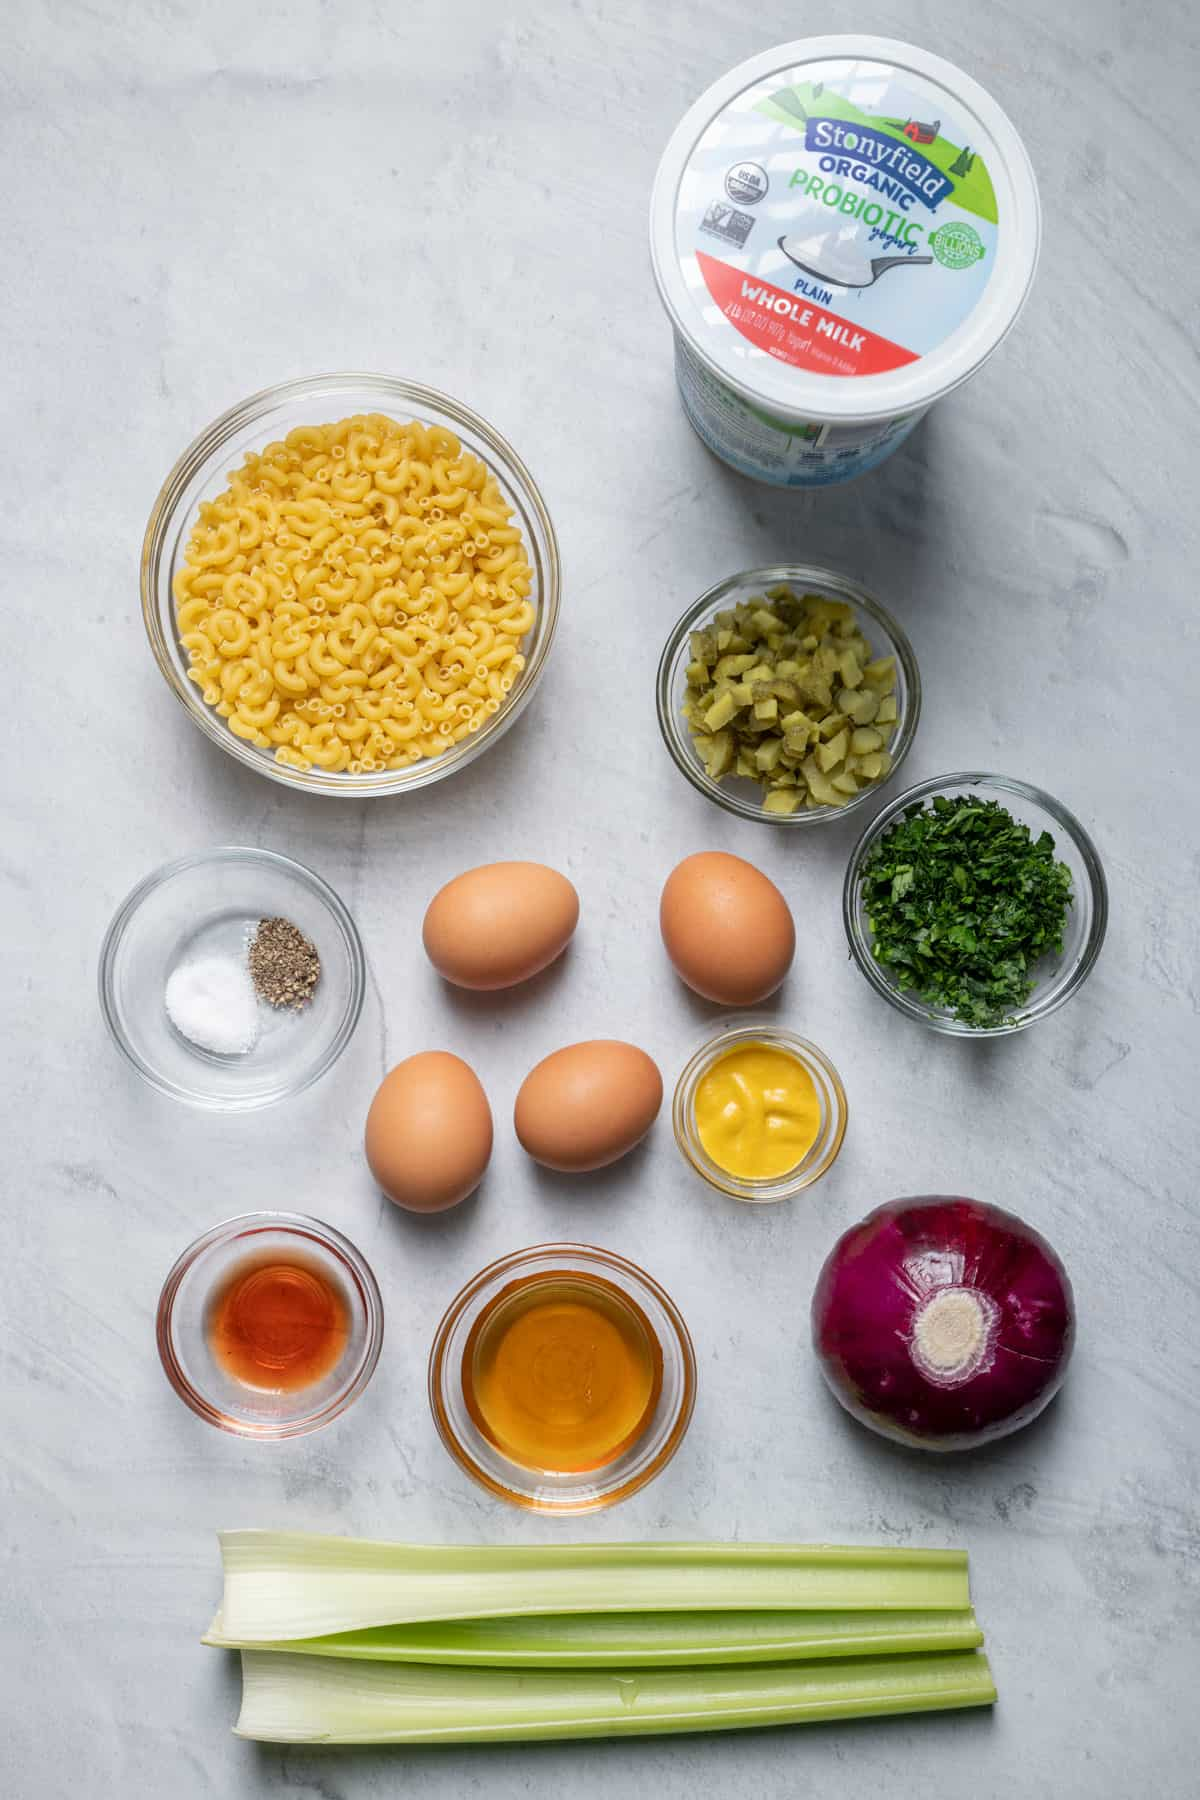 Ingredients to make the recipes before prepping